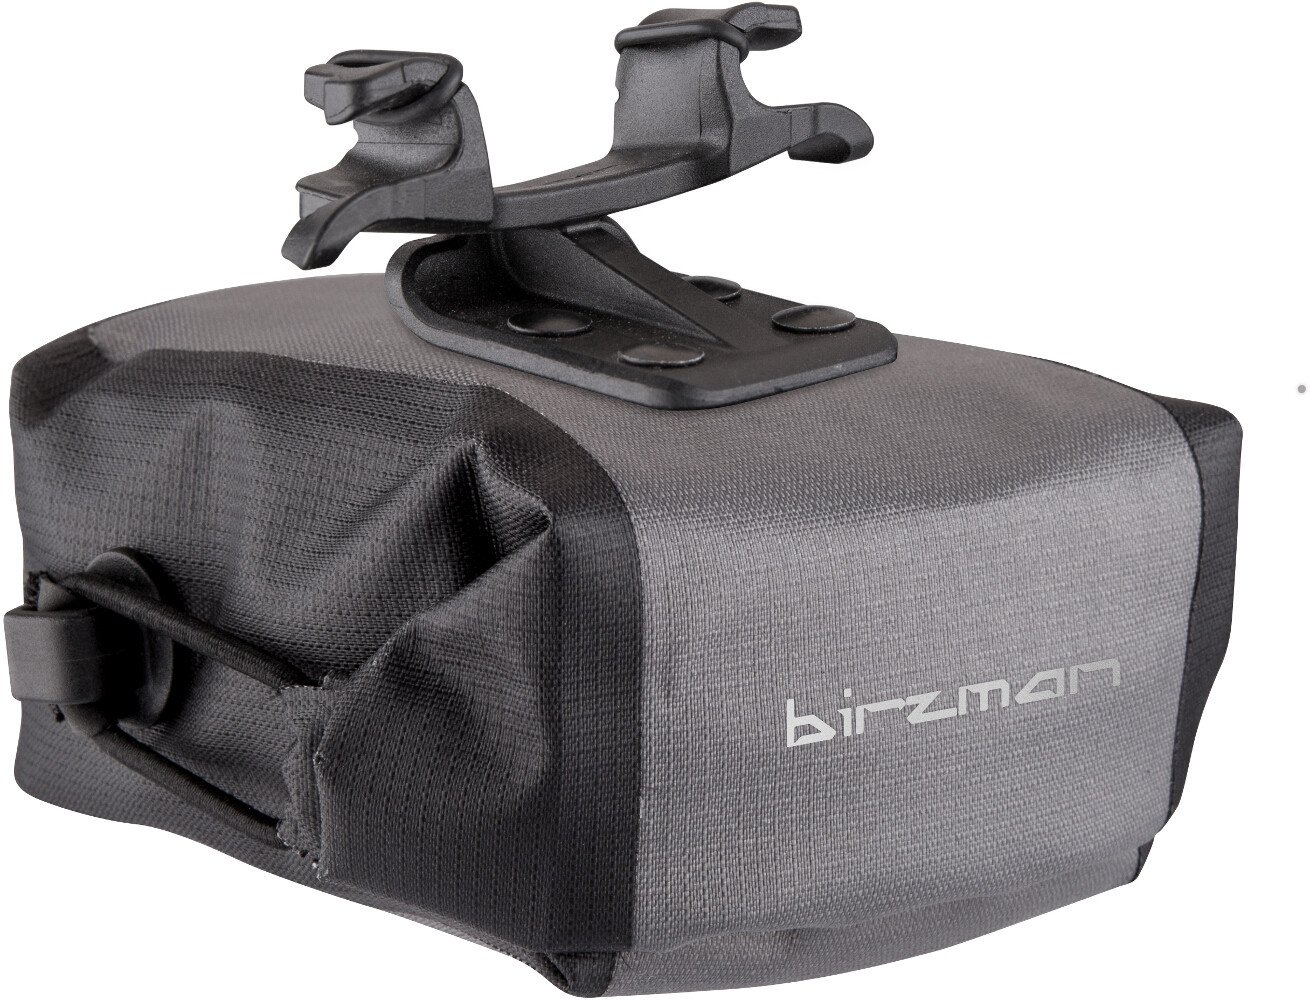 Birzman Elements 2 Saddle Bag | Saddle bags